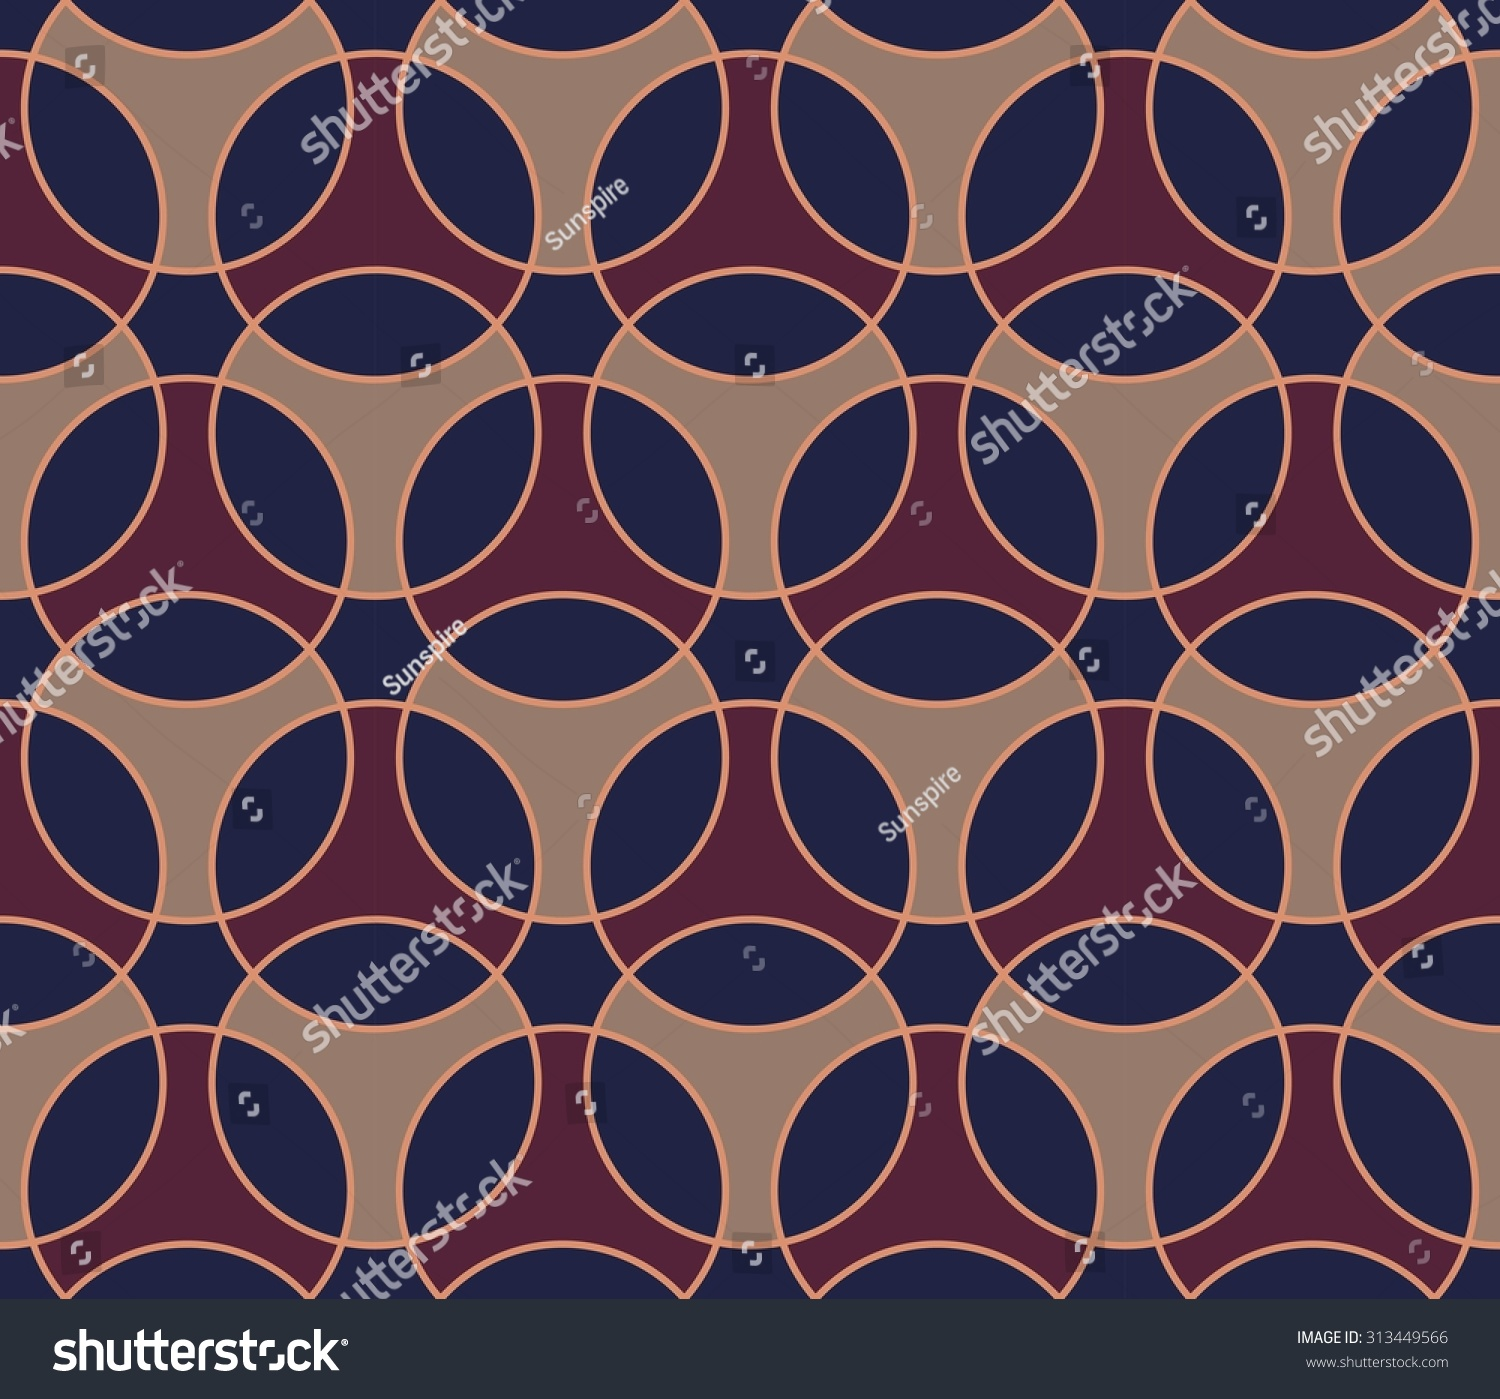 Bed sheet pattern texture - Vector Modern Seamless Colorful Pattern Connected Shapes Color Blue Purple Background Textile Print